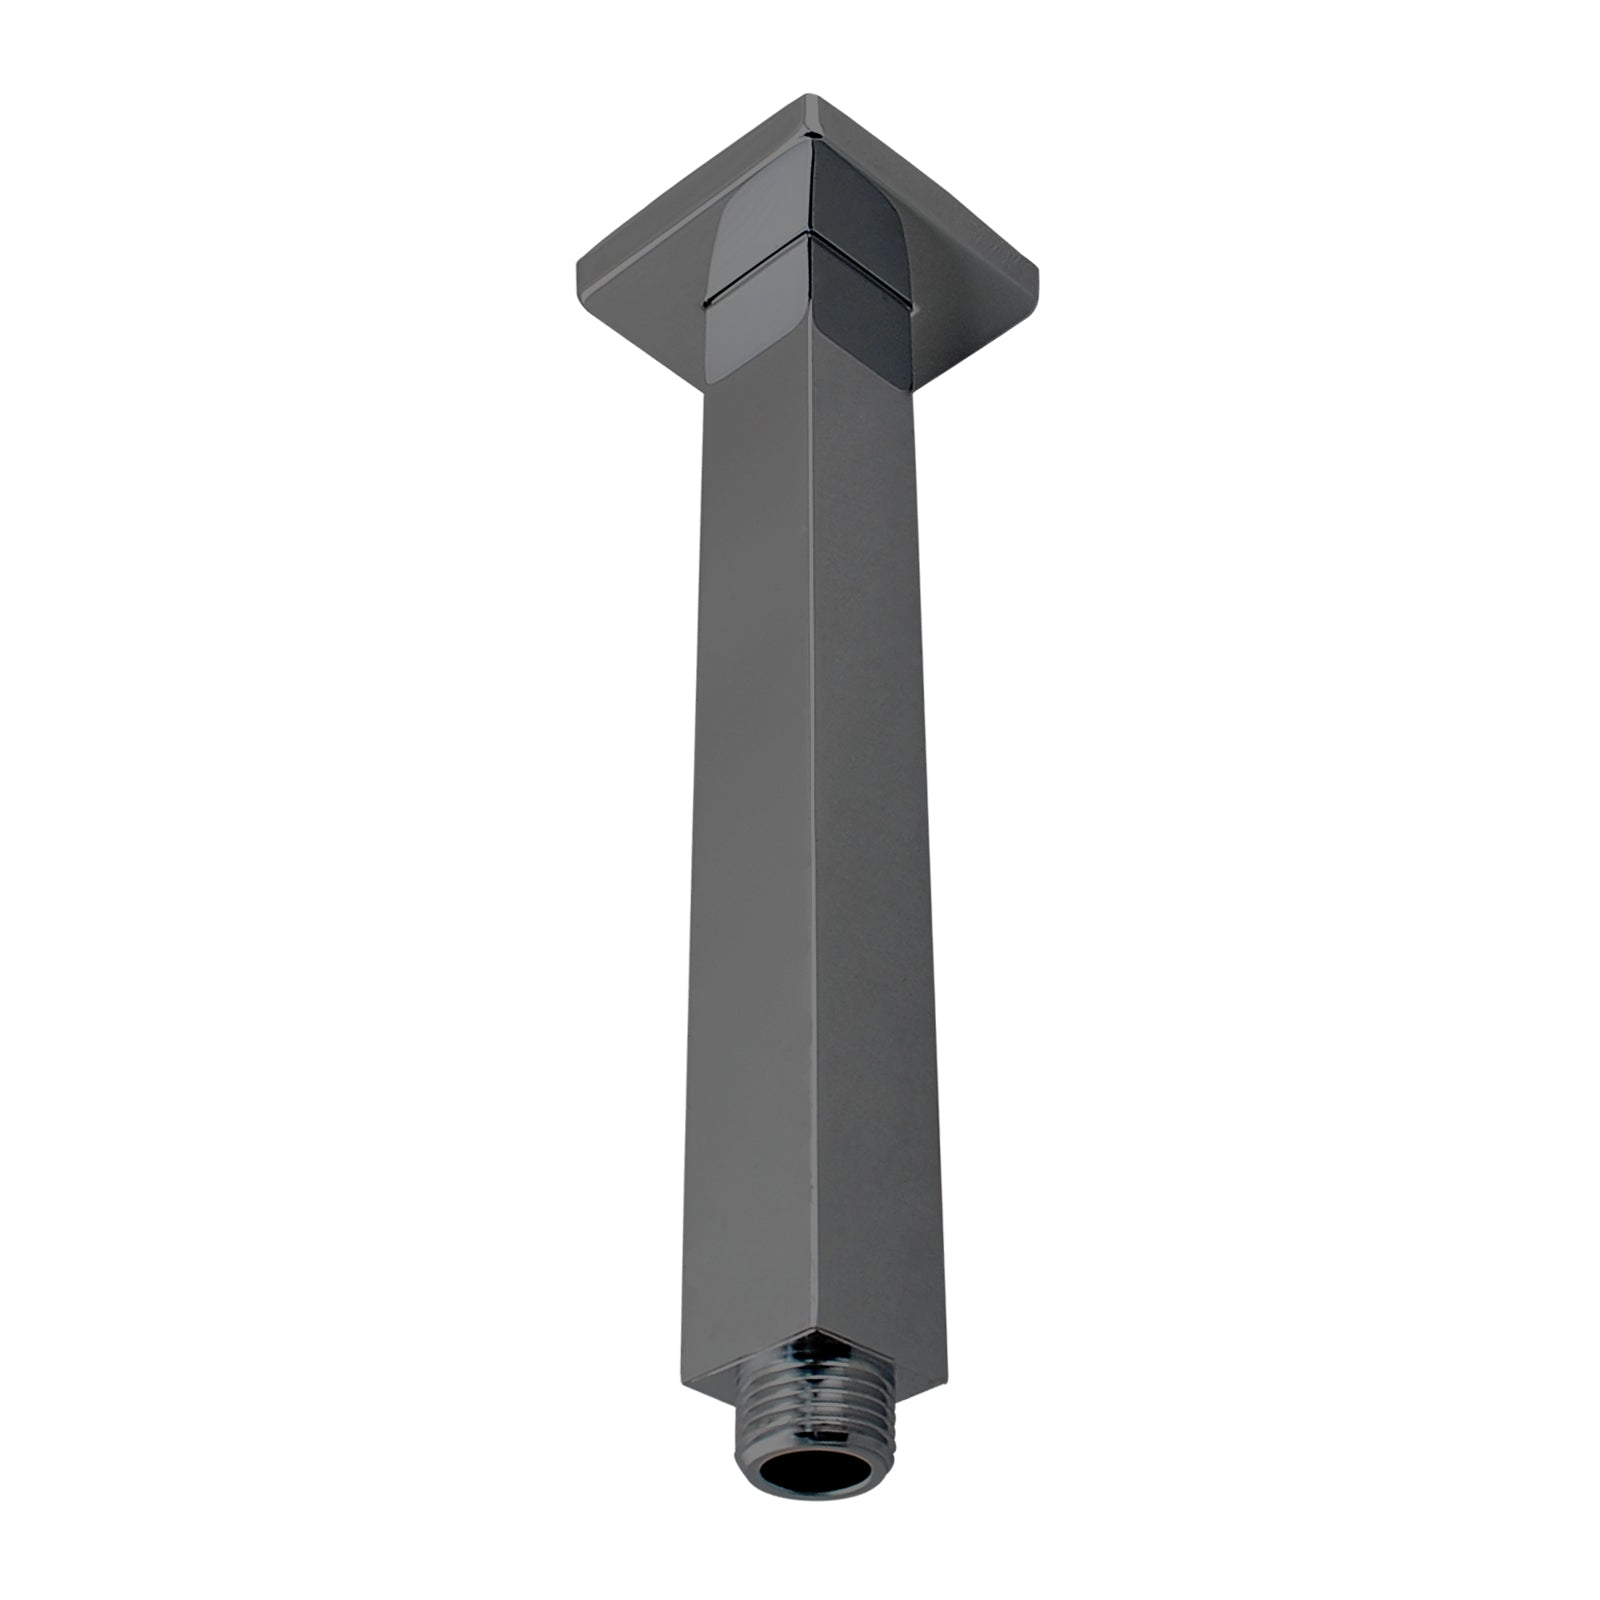 Cavallo Gun Metal Grey Square Ceiling Shower Arm 200mm